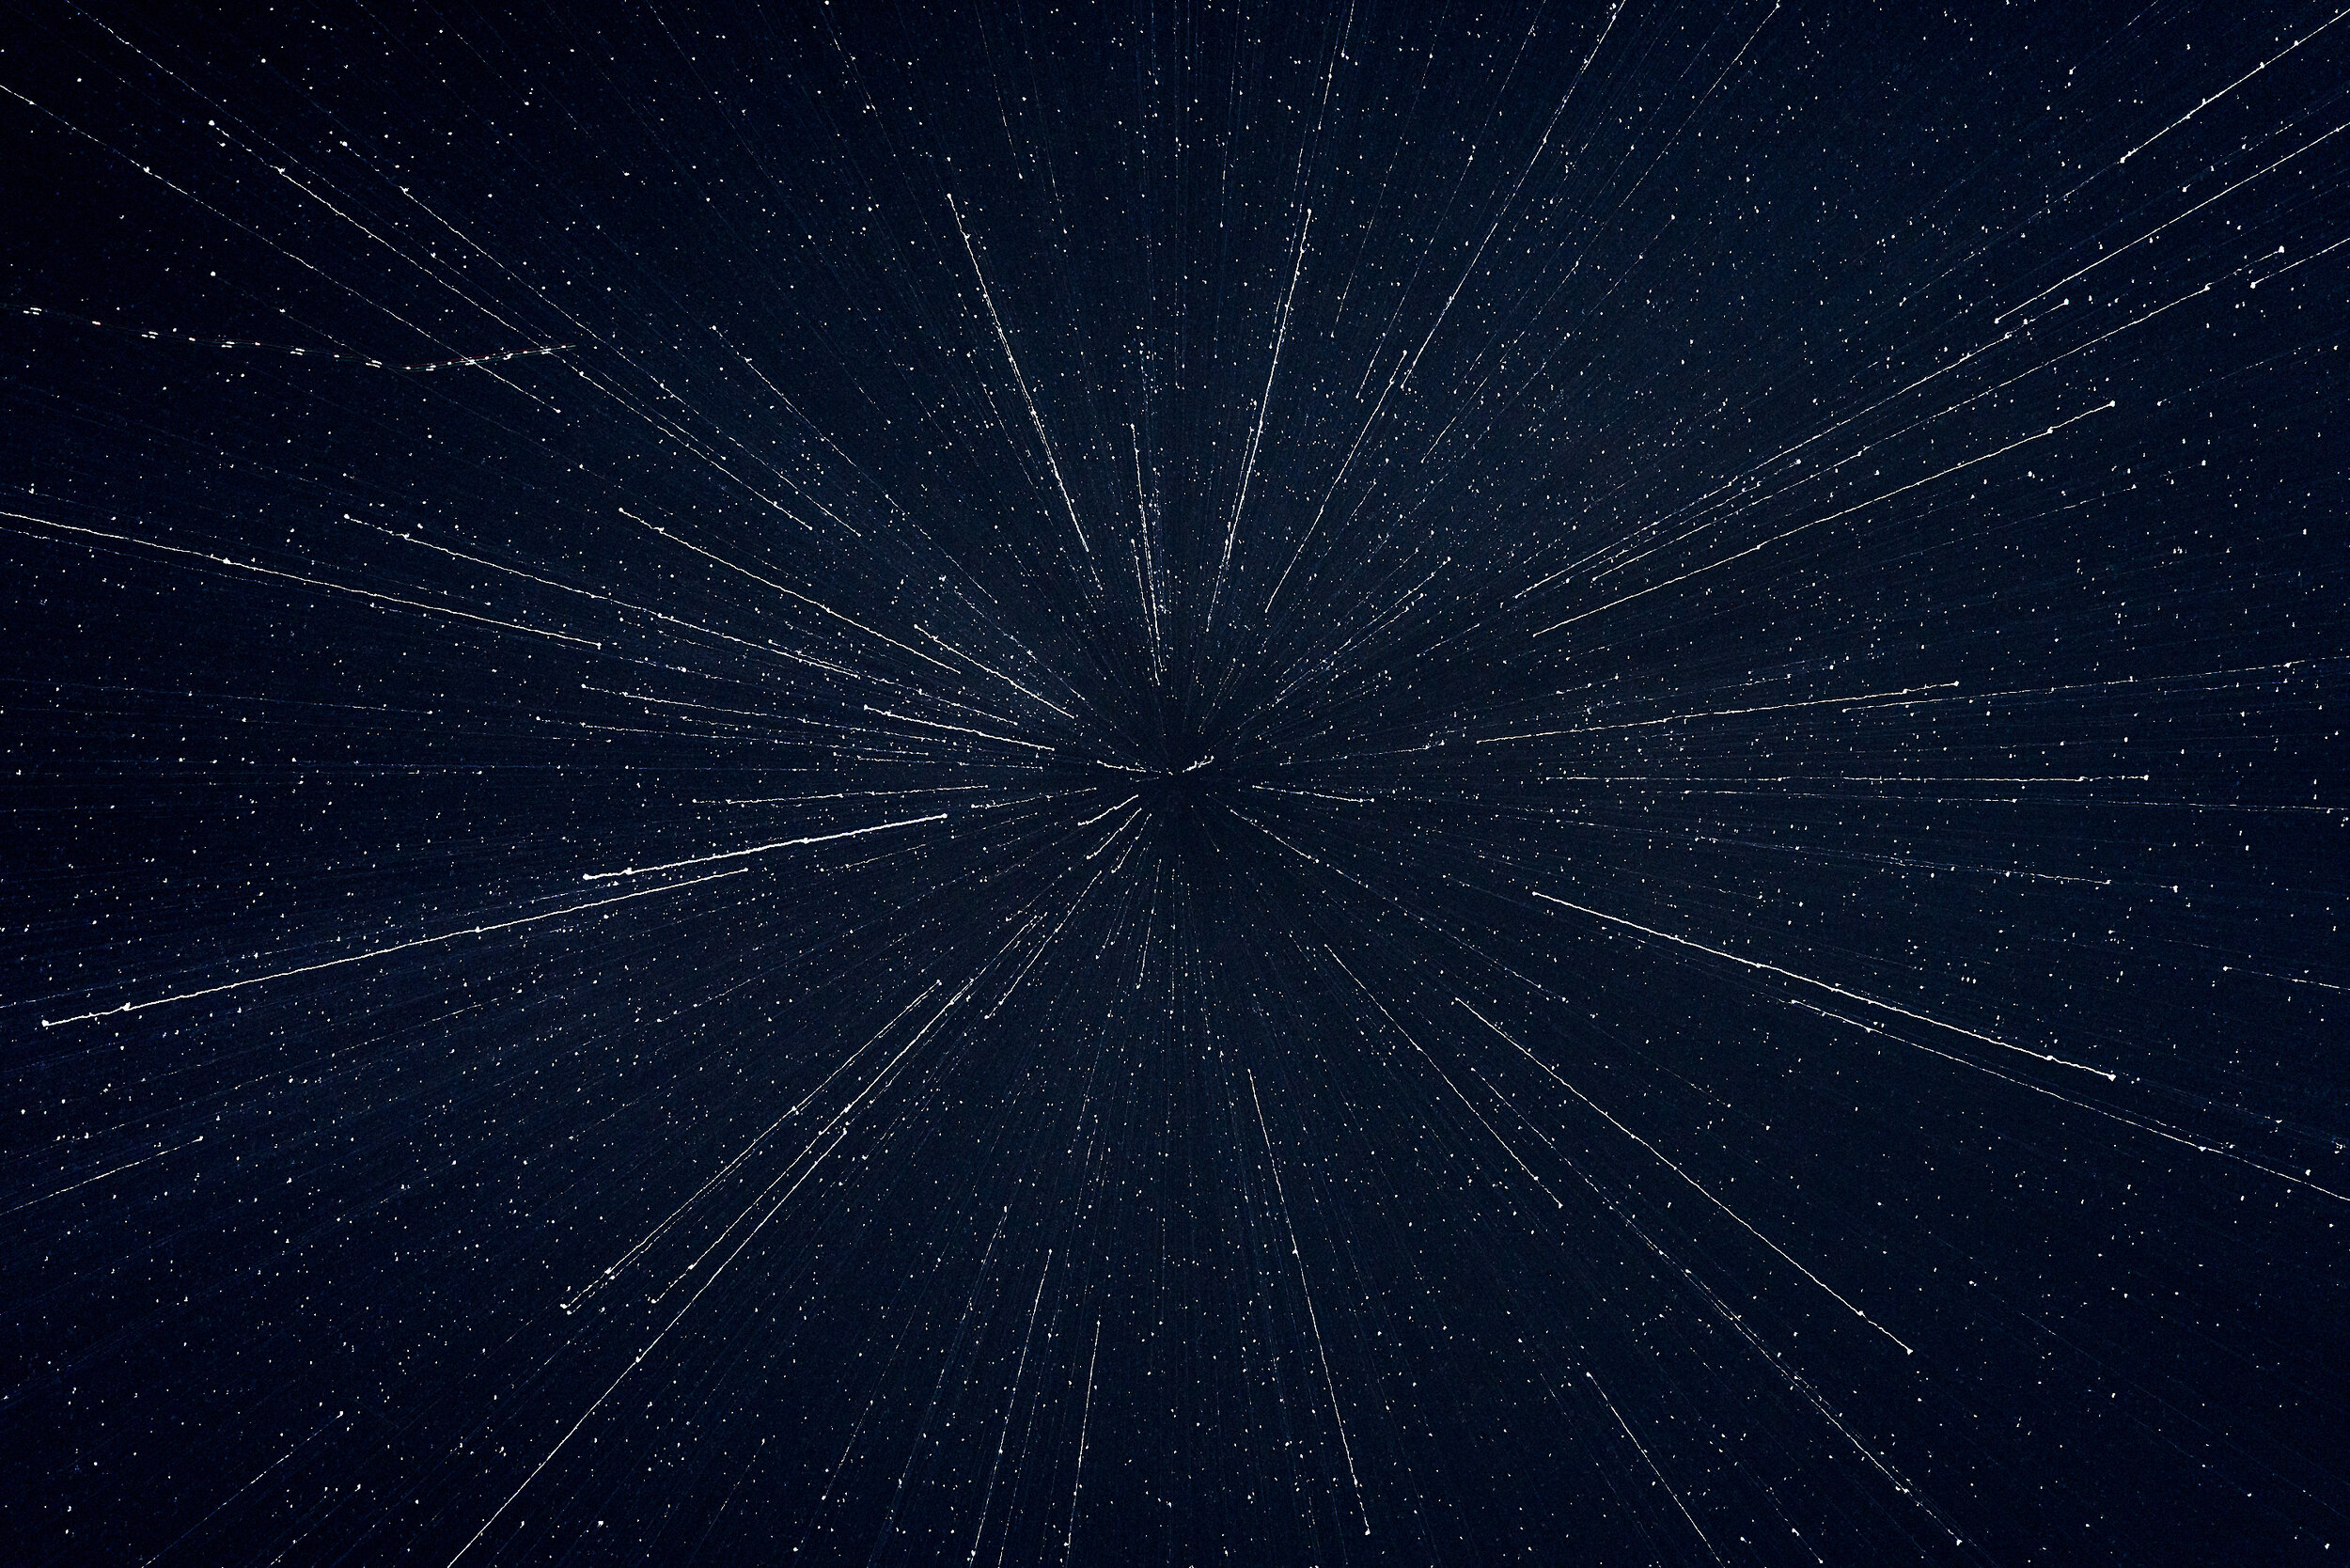 18.Zoom with Hoya Starscape filter